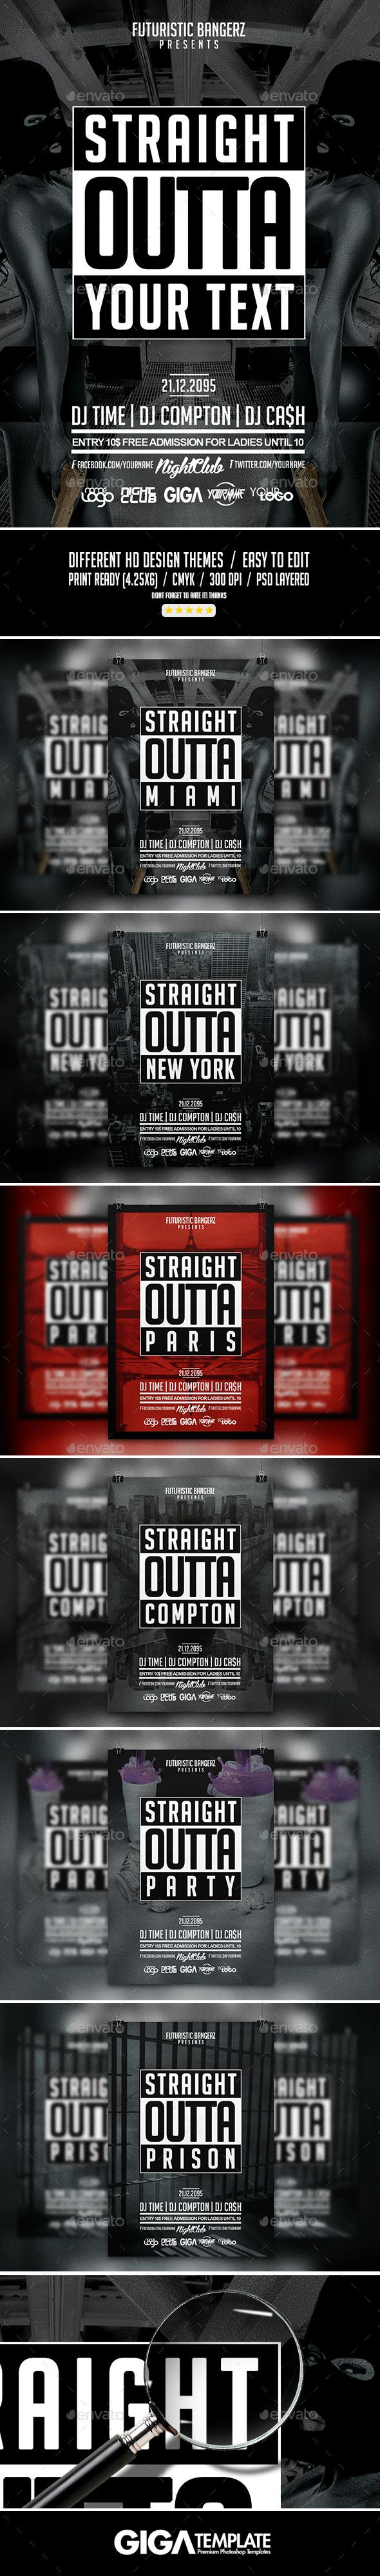 Straight Outta Party | Hip-Hop Flyer PSD Template #design Download: http://graphicriver.net/item/straight-outta-party-hiphop-flyer-psd-template/12577752?ref=ksioks